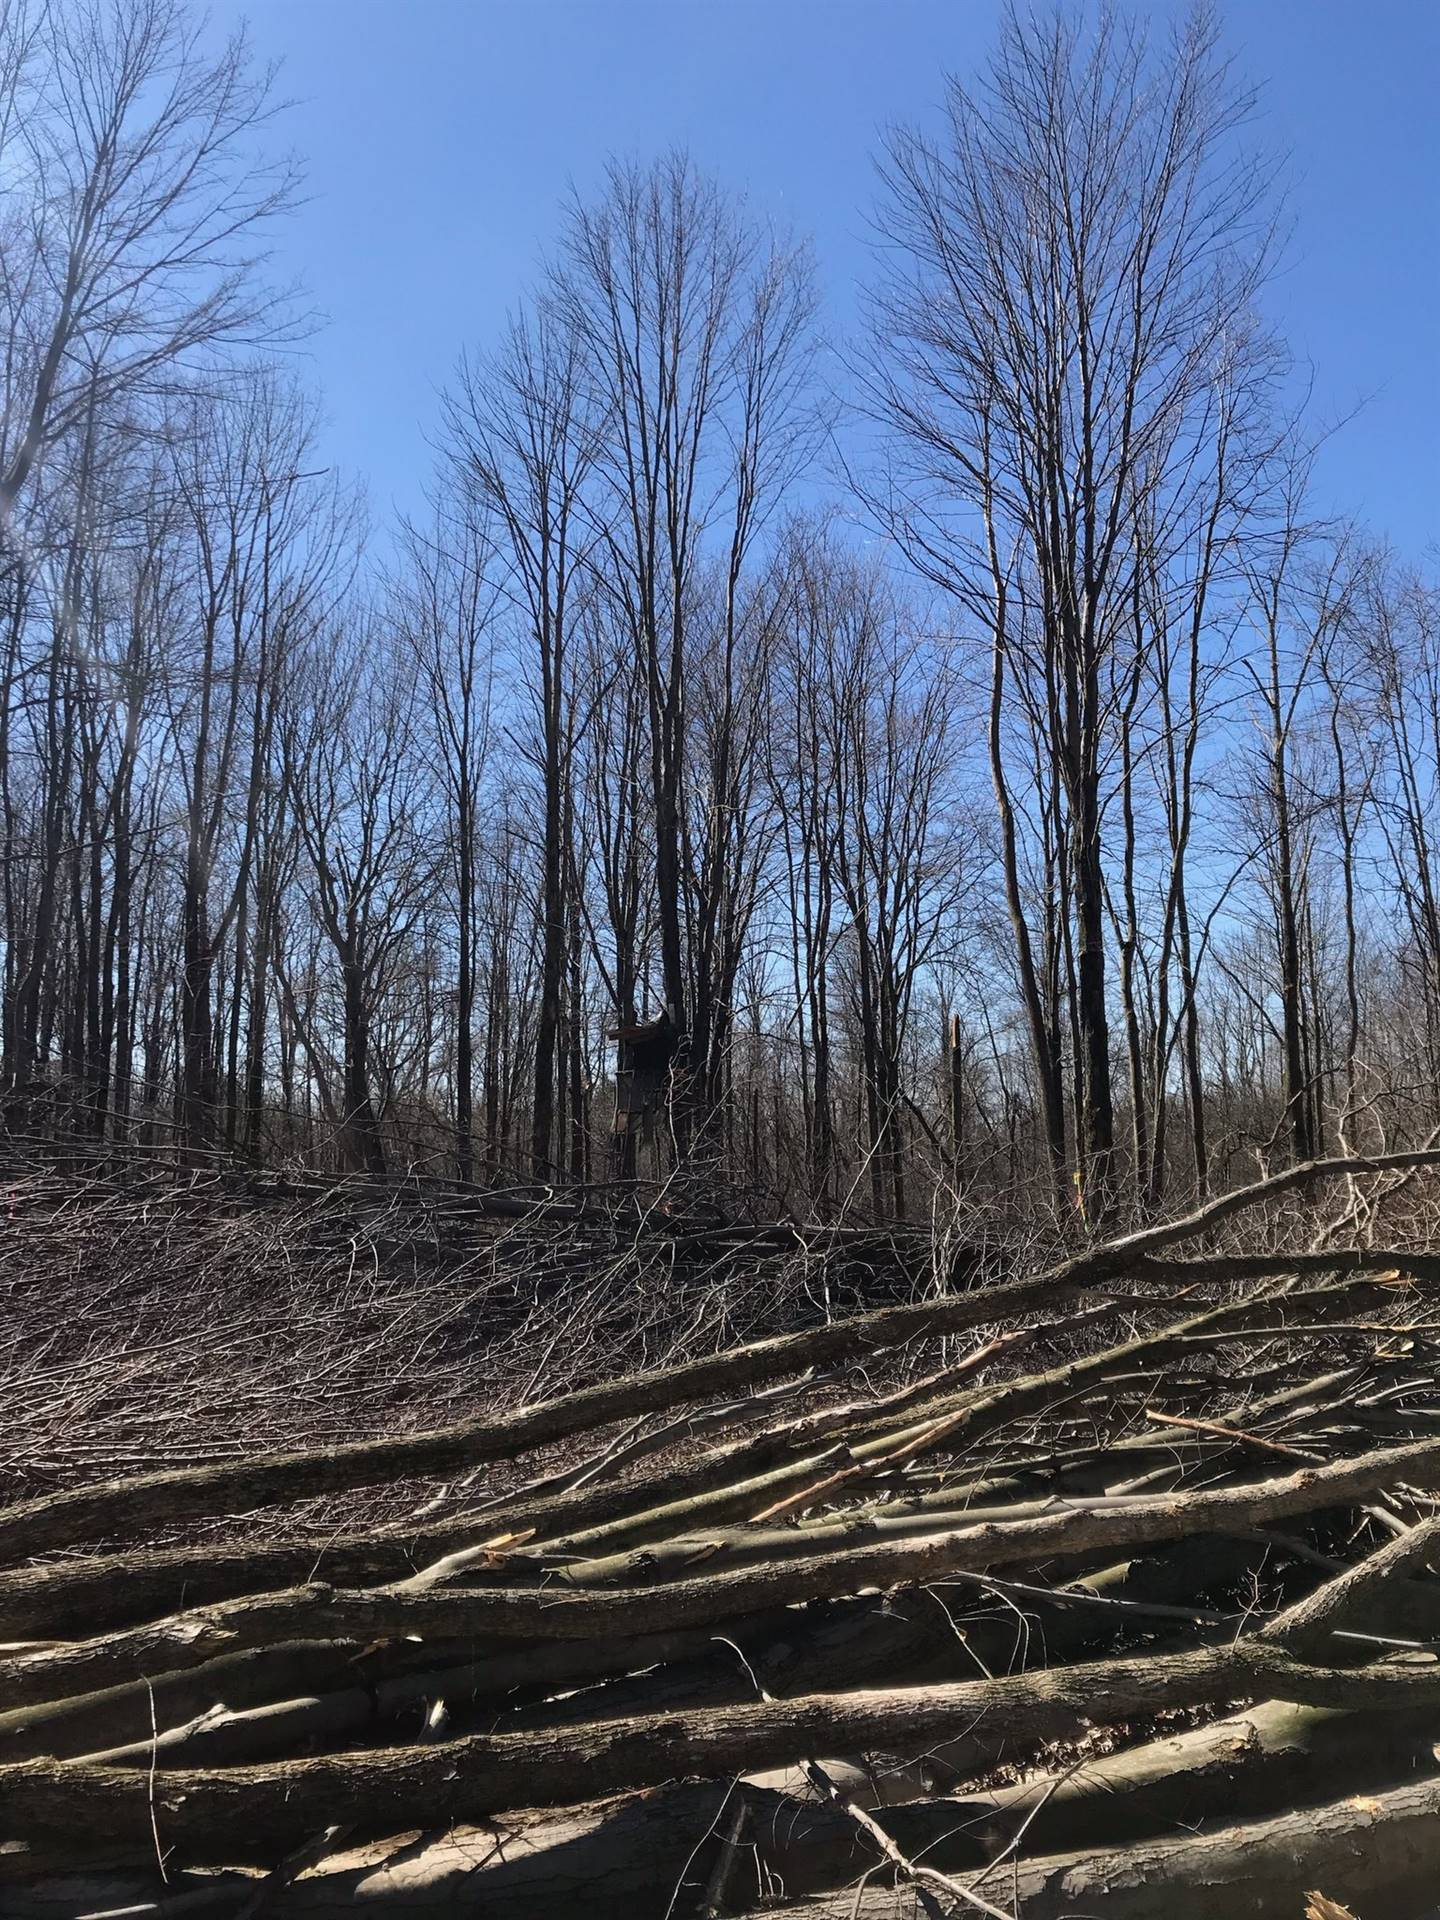 Clearing the trees on the site - March 26, 2019